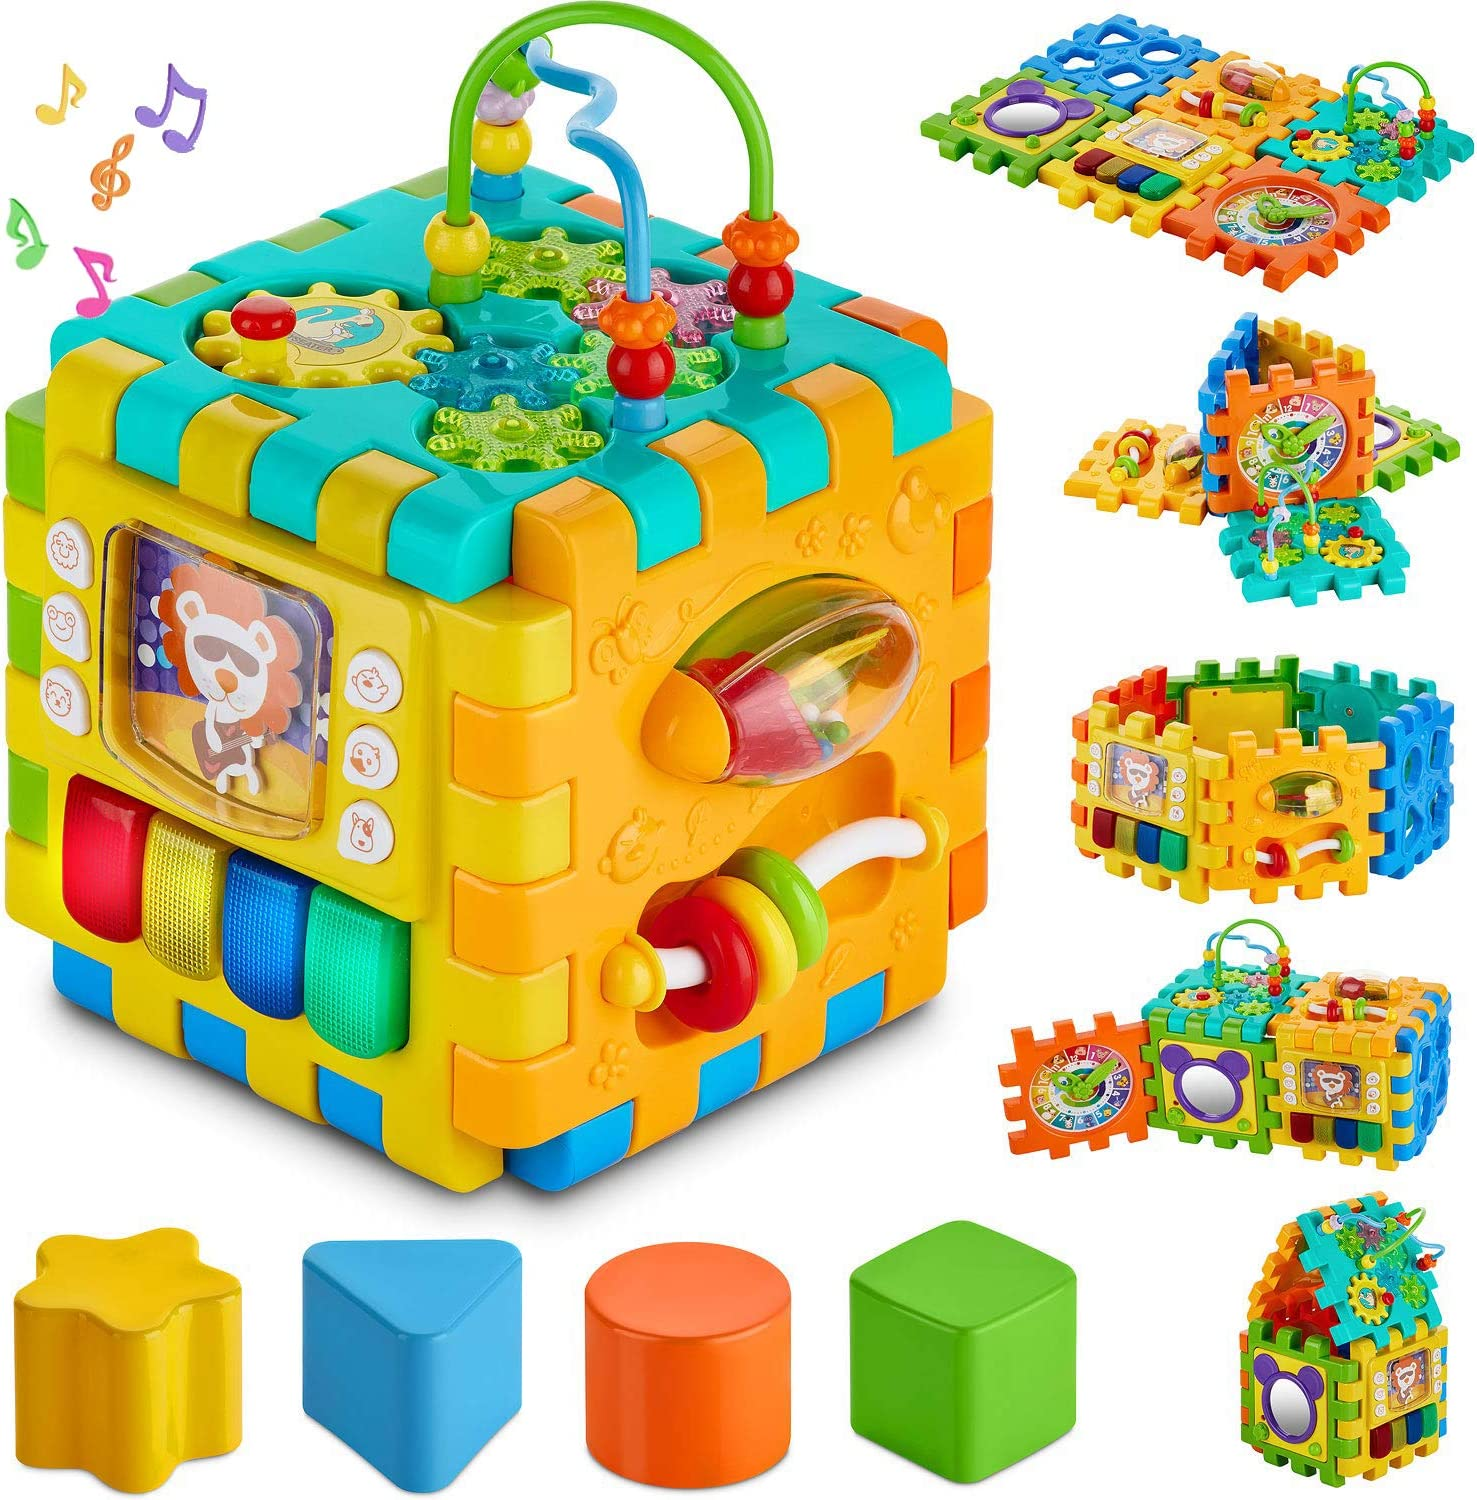 Toys For Infants >> Baby Activity Cube Toddler Toys 6 In 1 Shape Sorter Toys Baby Activity Play Centers For Kids Infants Educational Musci Play Cube Preschool Toys For